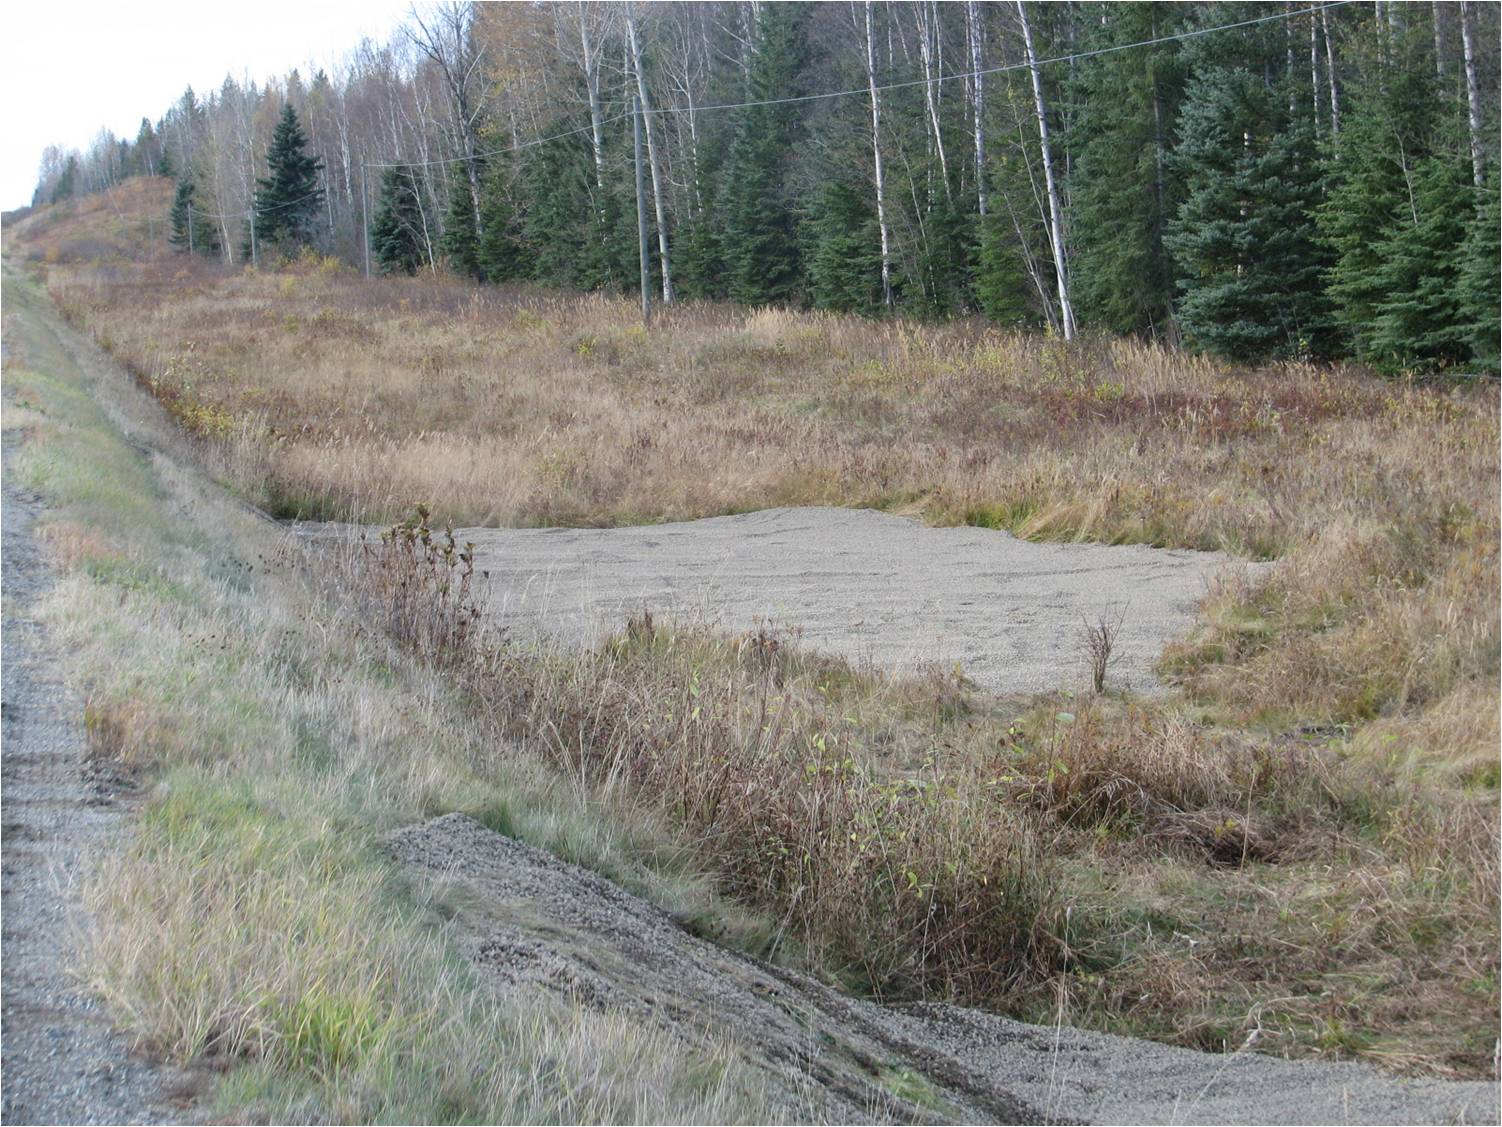 Example of a treated roadside salt pool/mineral lick filled with small rocks, BC. Image credit: Gayle Hesse, Wildlife Collision Prevention Program (WCPP)